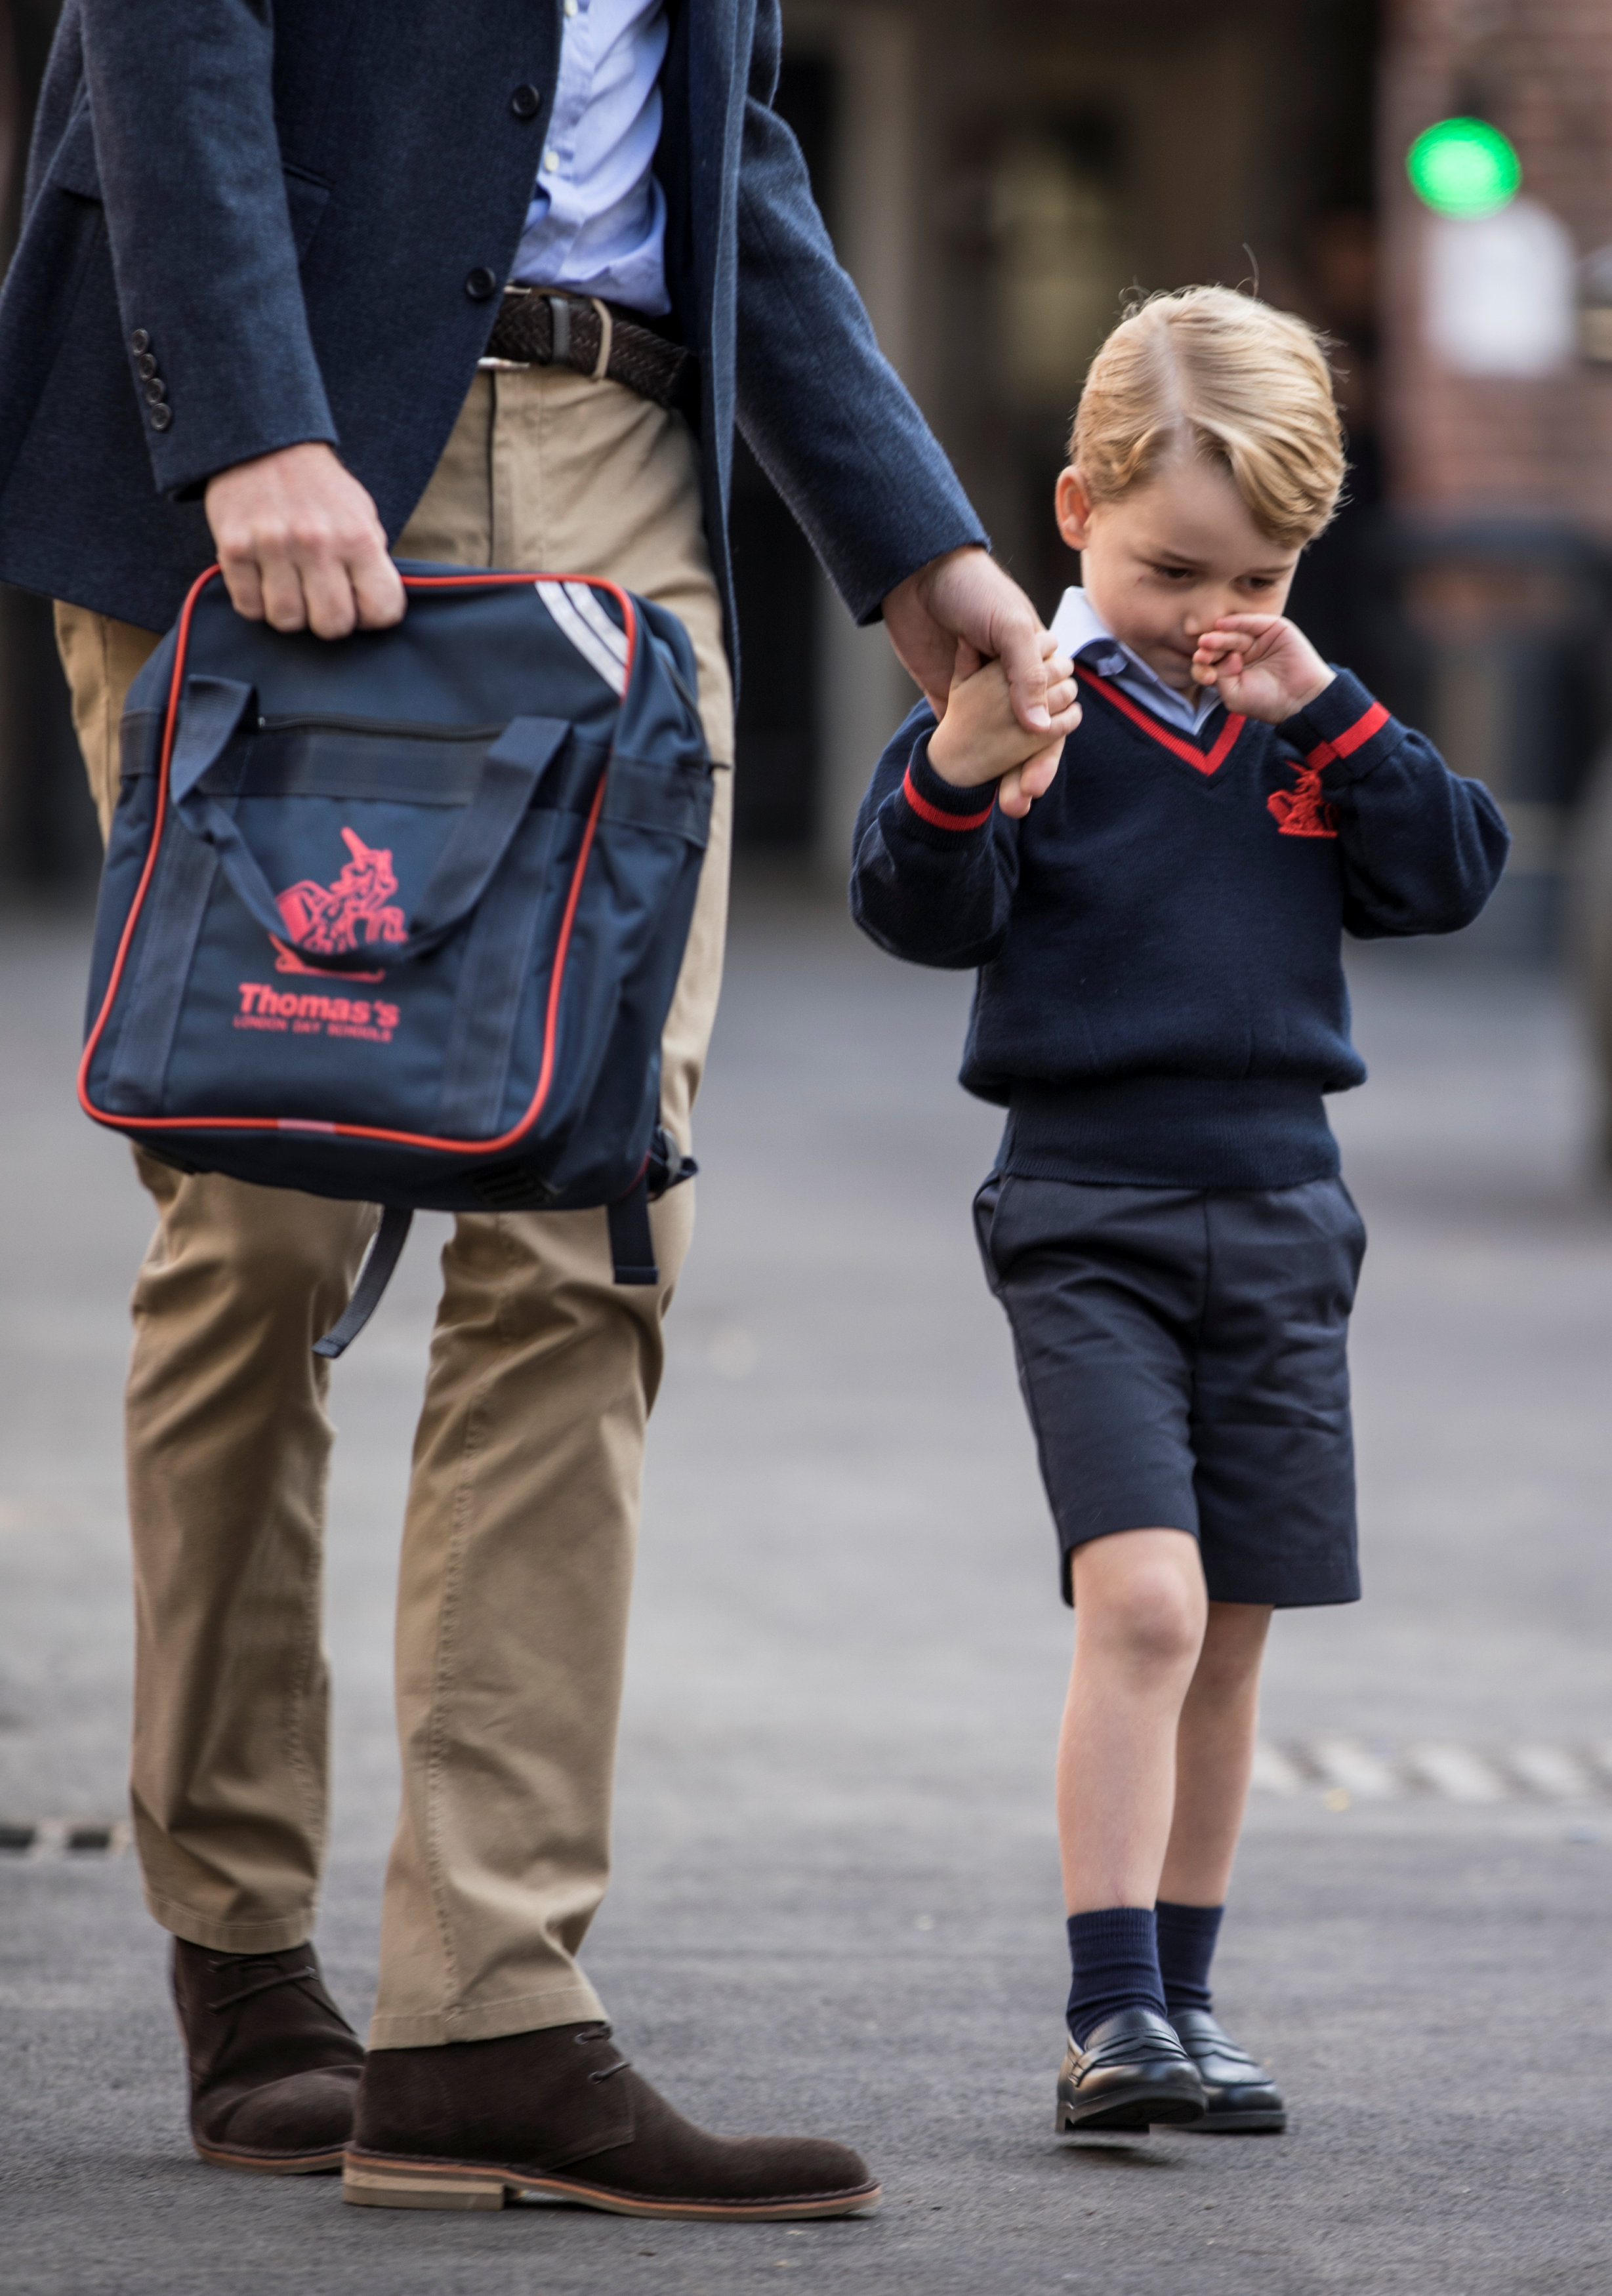 Prince George holds his father Britain's Prince William's hand as he arrives on his first day of school at Thomas's school in Battersea, London on Sept. 7, 2017. (REUTERS/Richard Pohle/Pool)